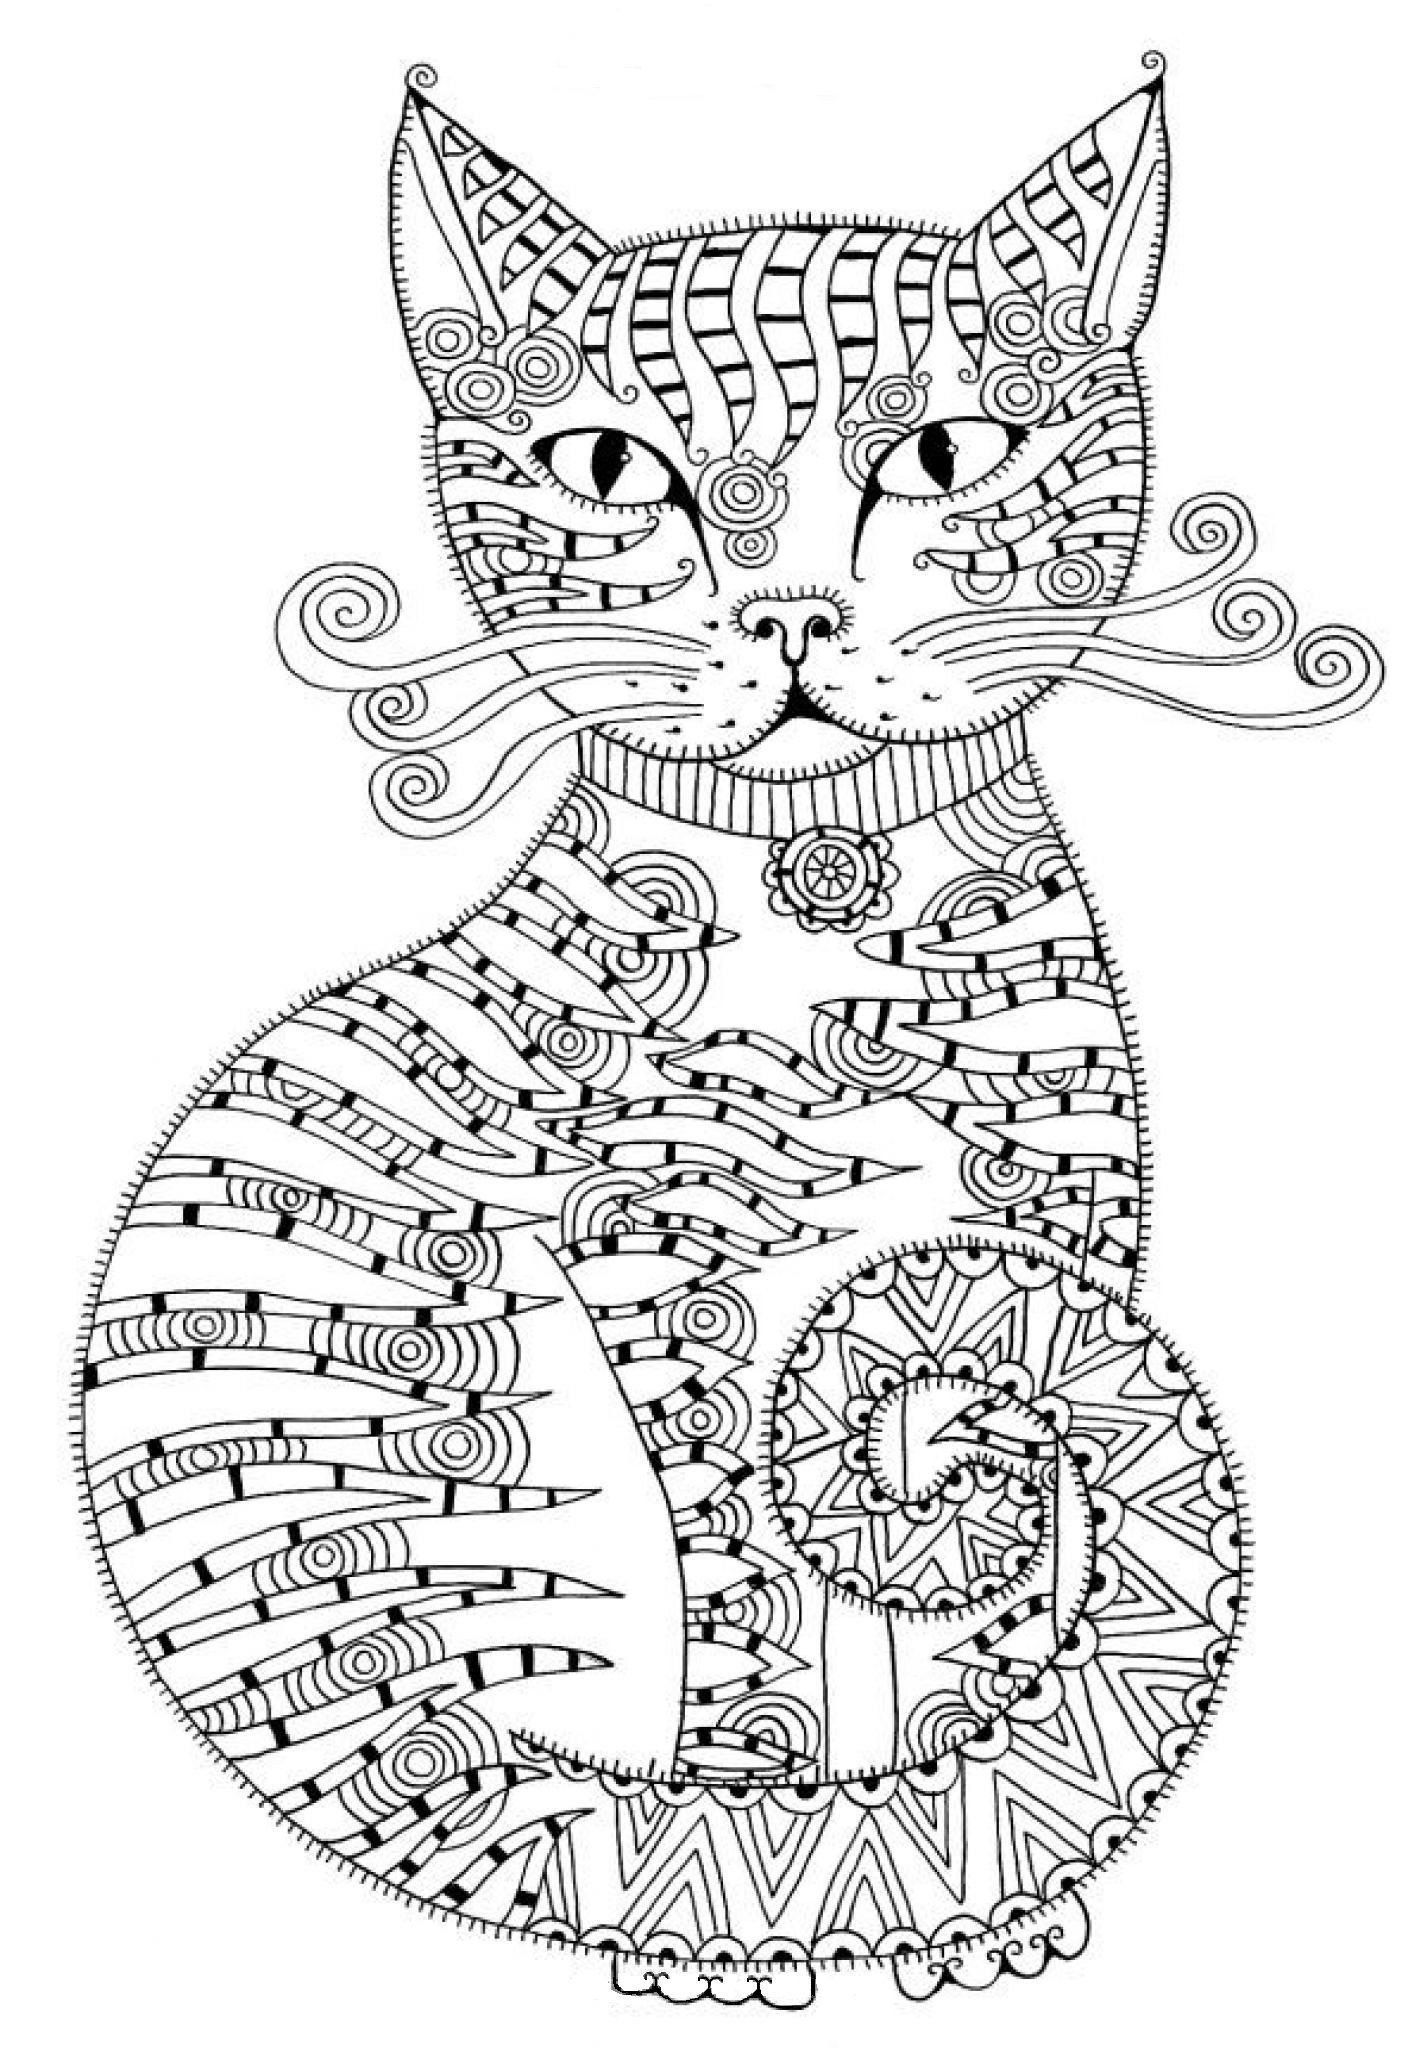 Zentangle Cat Coloring Page Free Printable Coloring Pages Cat Coloring Page Coloring Pages Free Printable Coloring Pages [ 1500 x 1159 Pixel ]